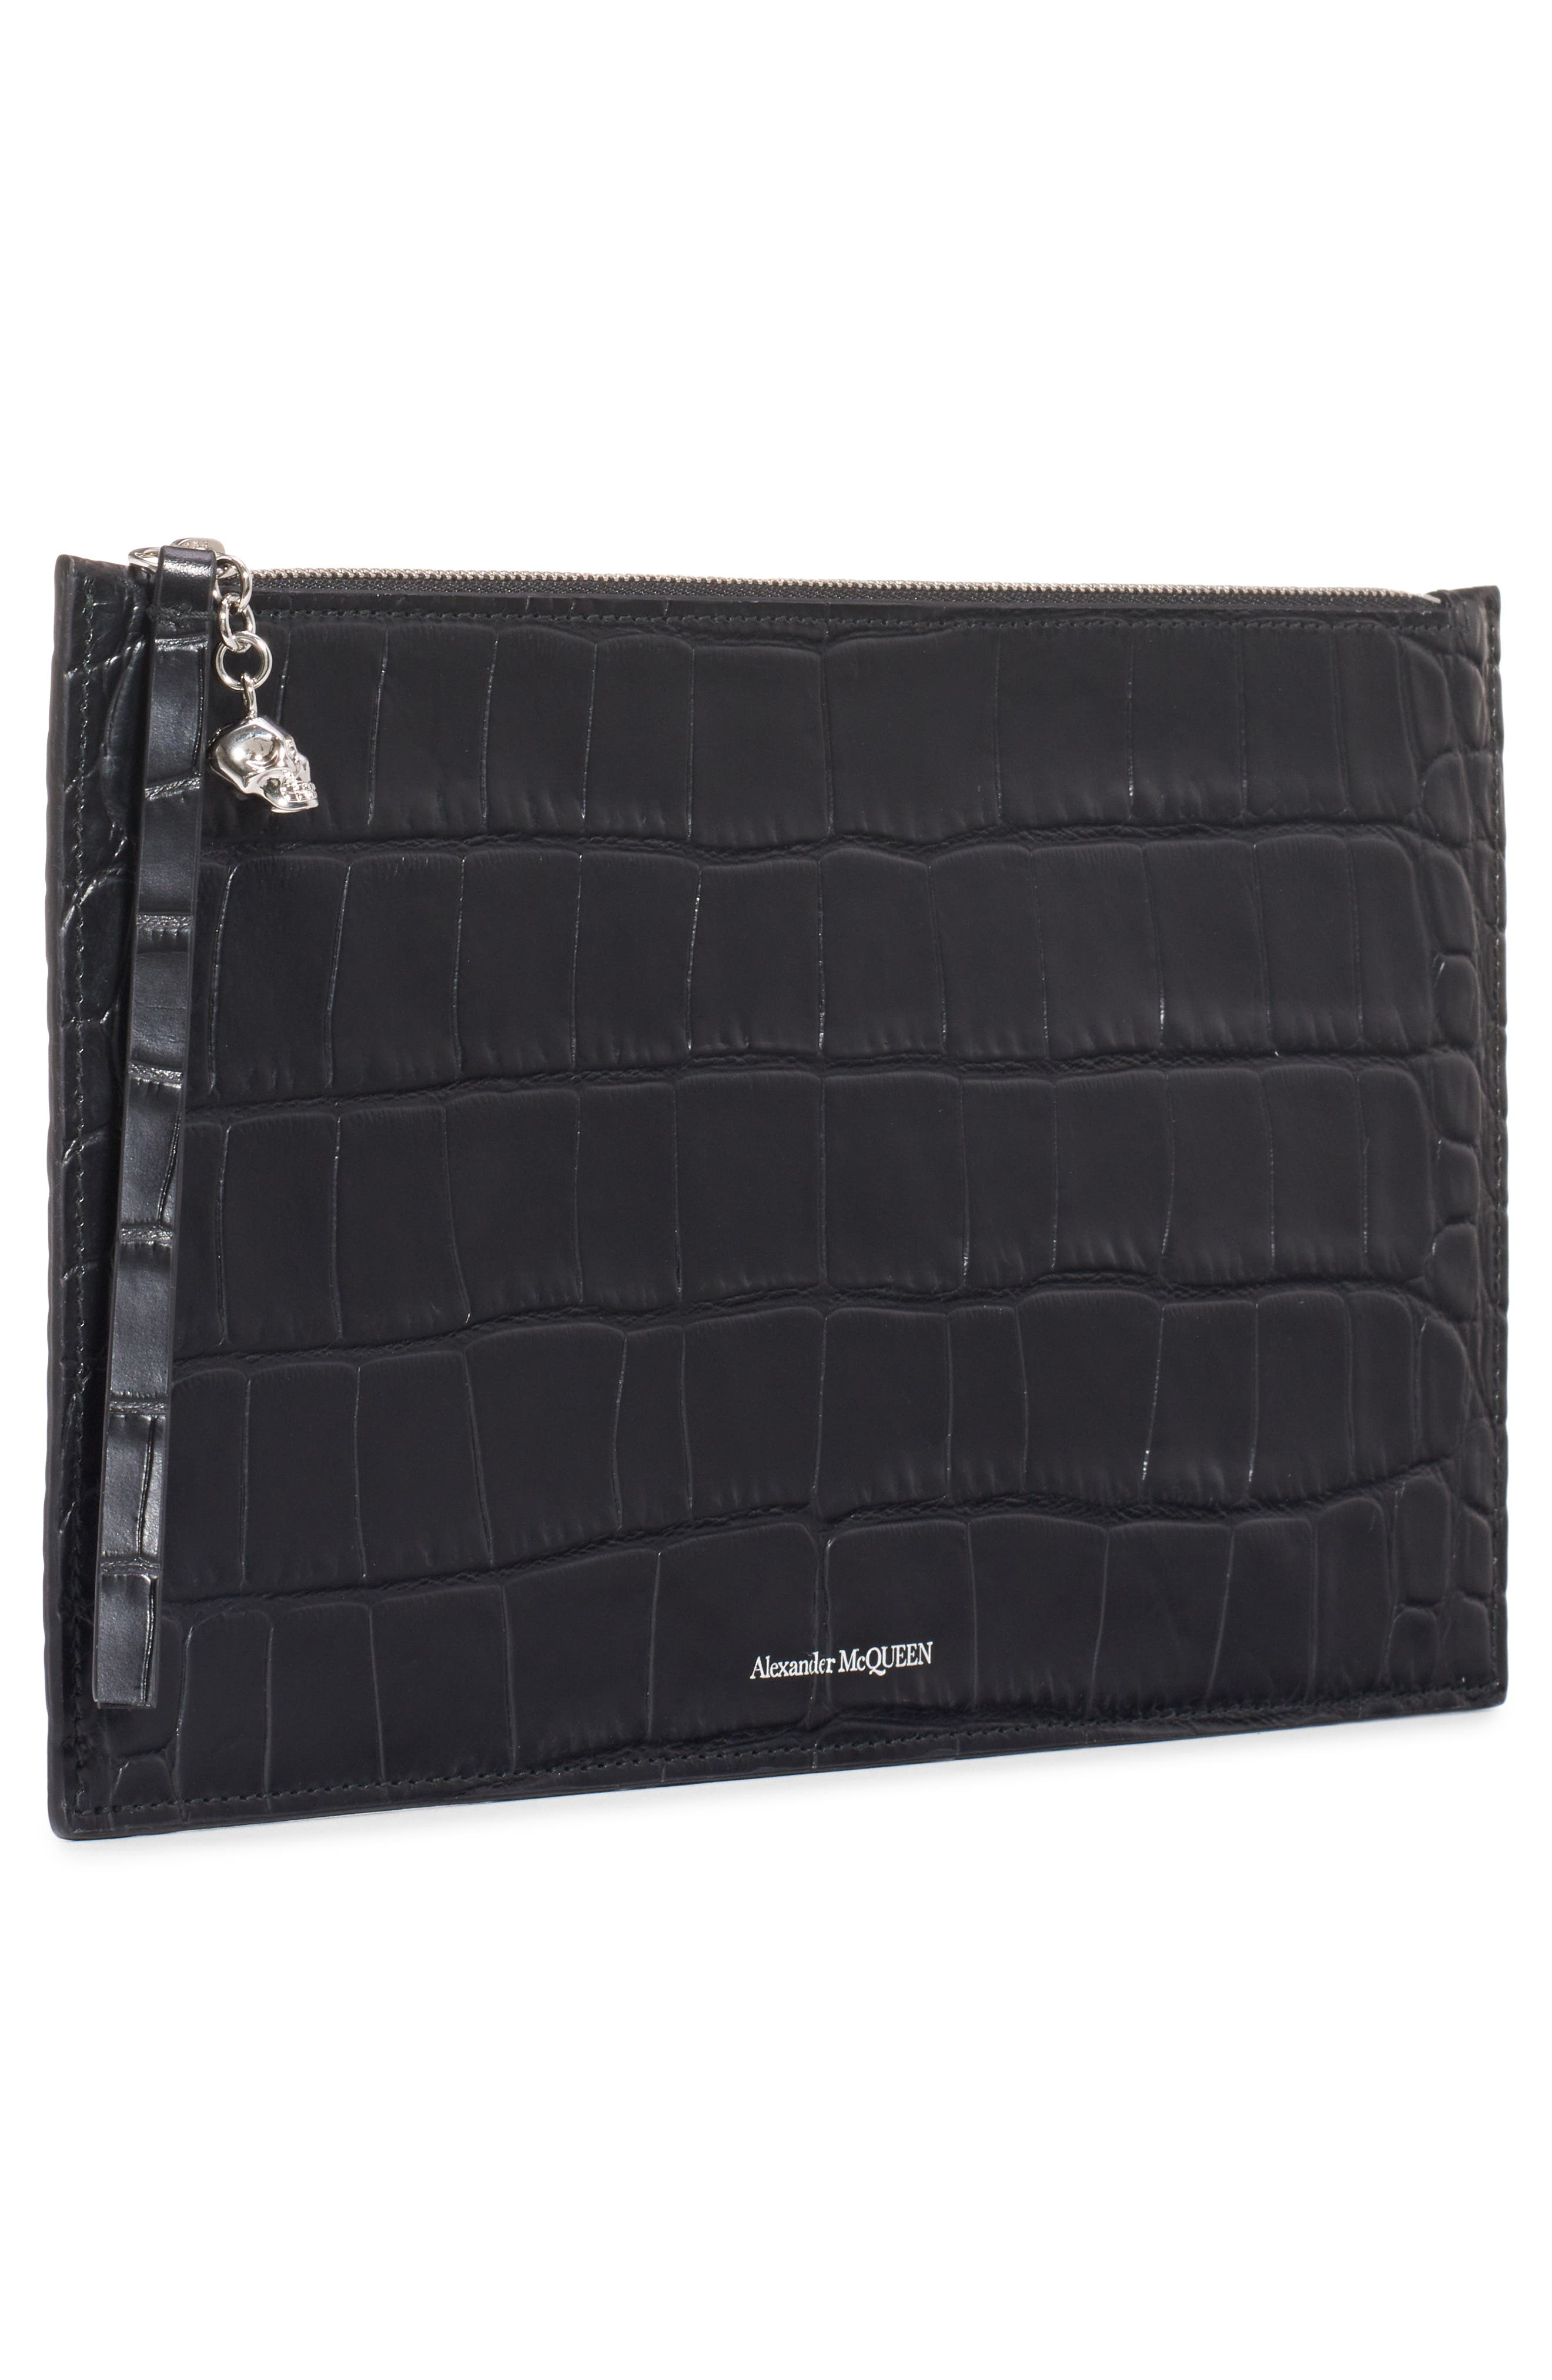 ALEXANDER MCQUEEN, Croc Embossed Leather Pouch, Alternate thumbnail 5, color, BLACK